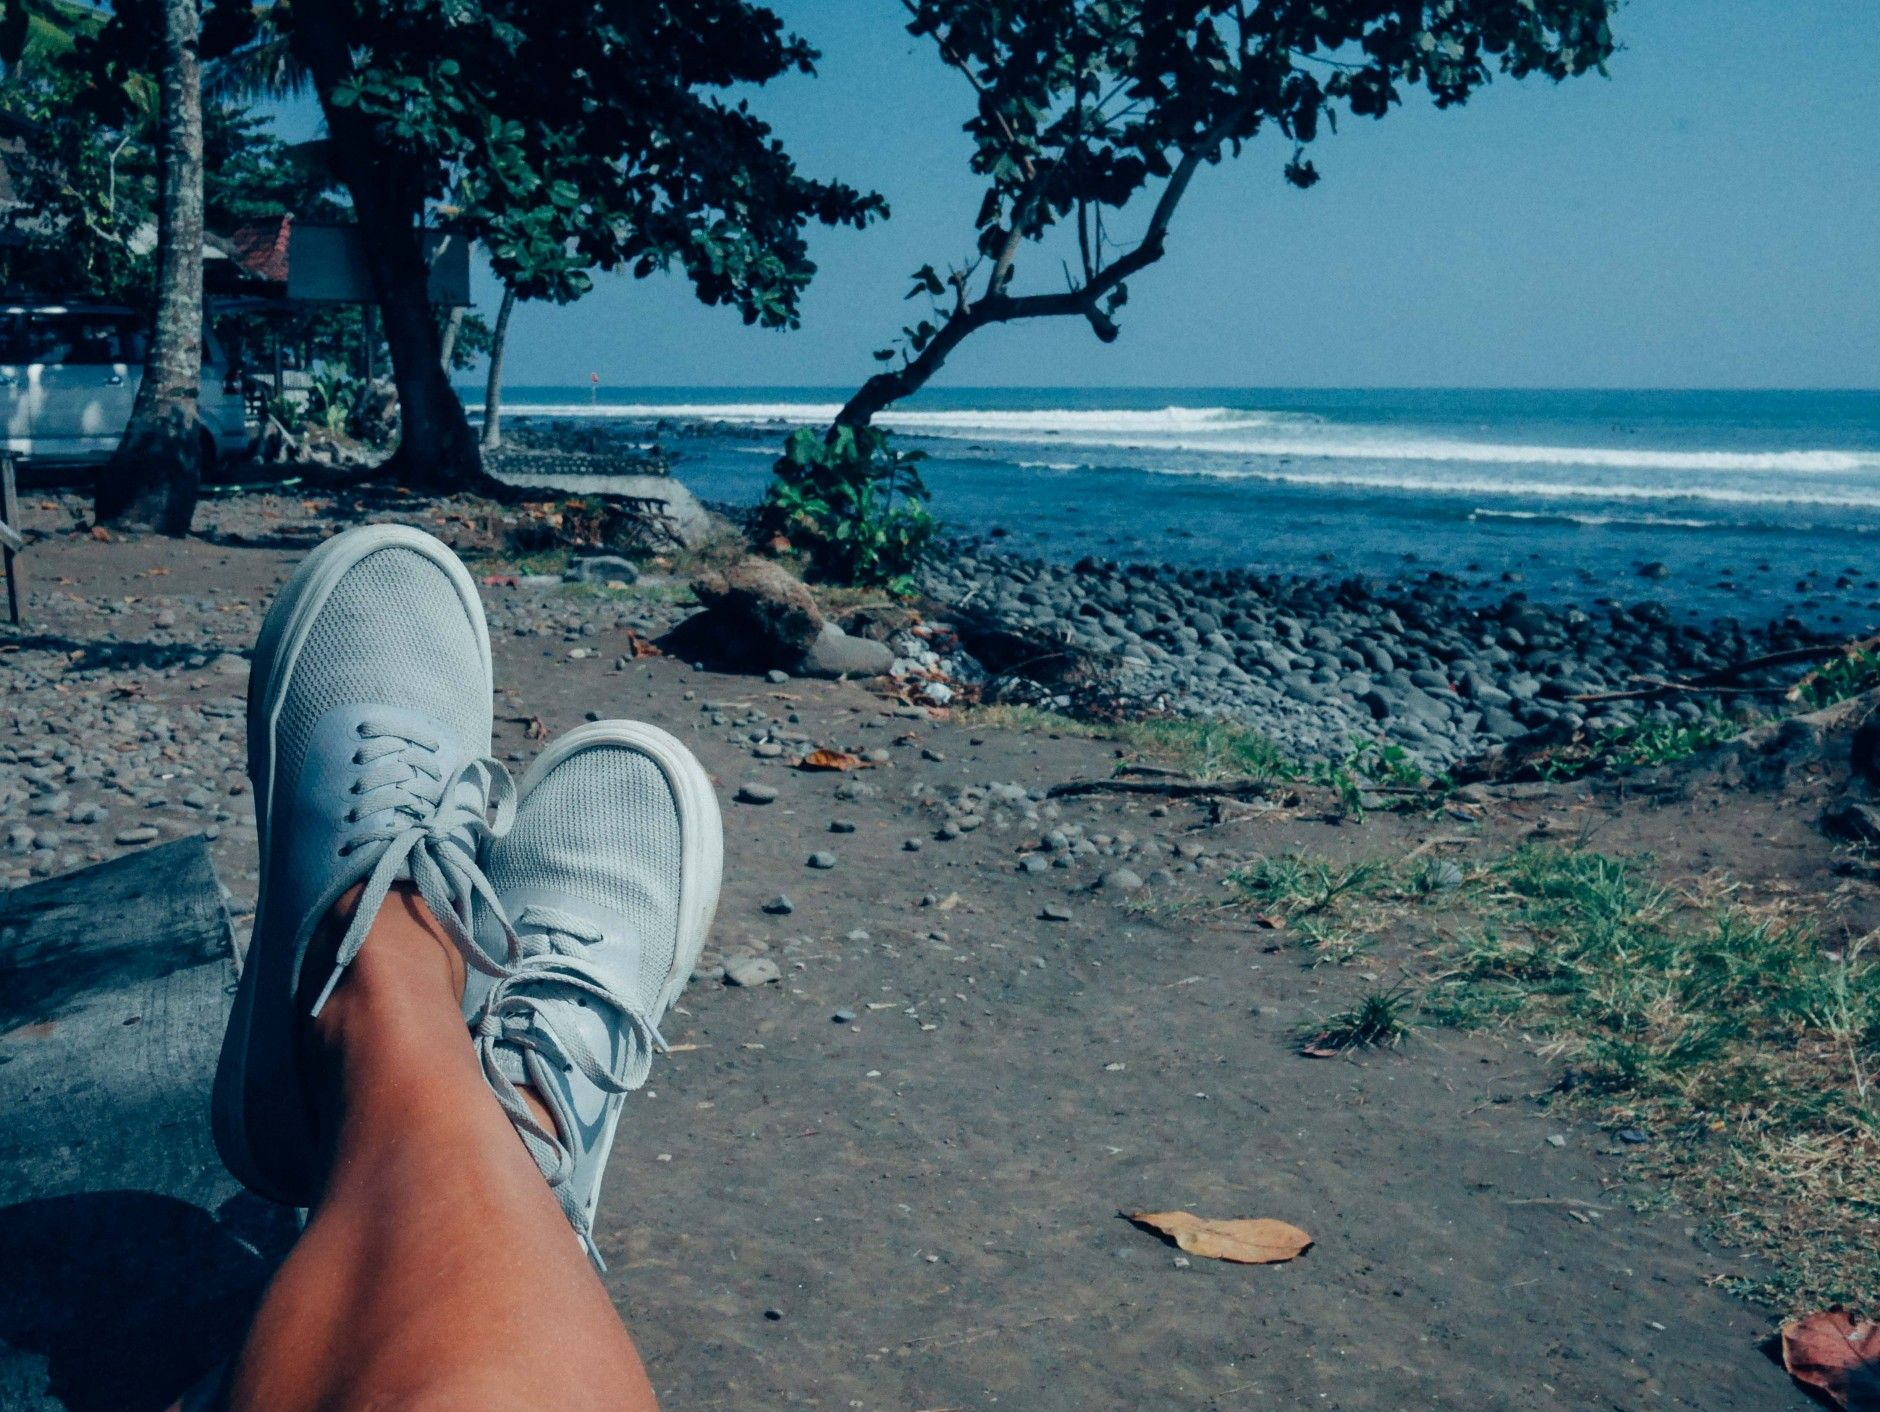 People Footwear — Beaches of Bali, Indonesia #TheStanley in Picket White- Photographer: Caley Vanular